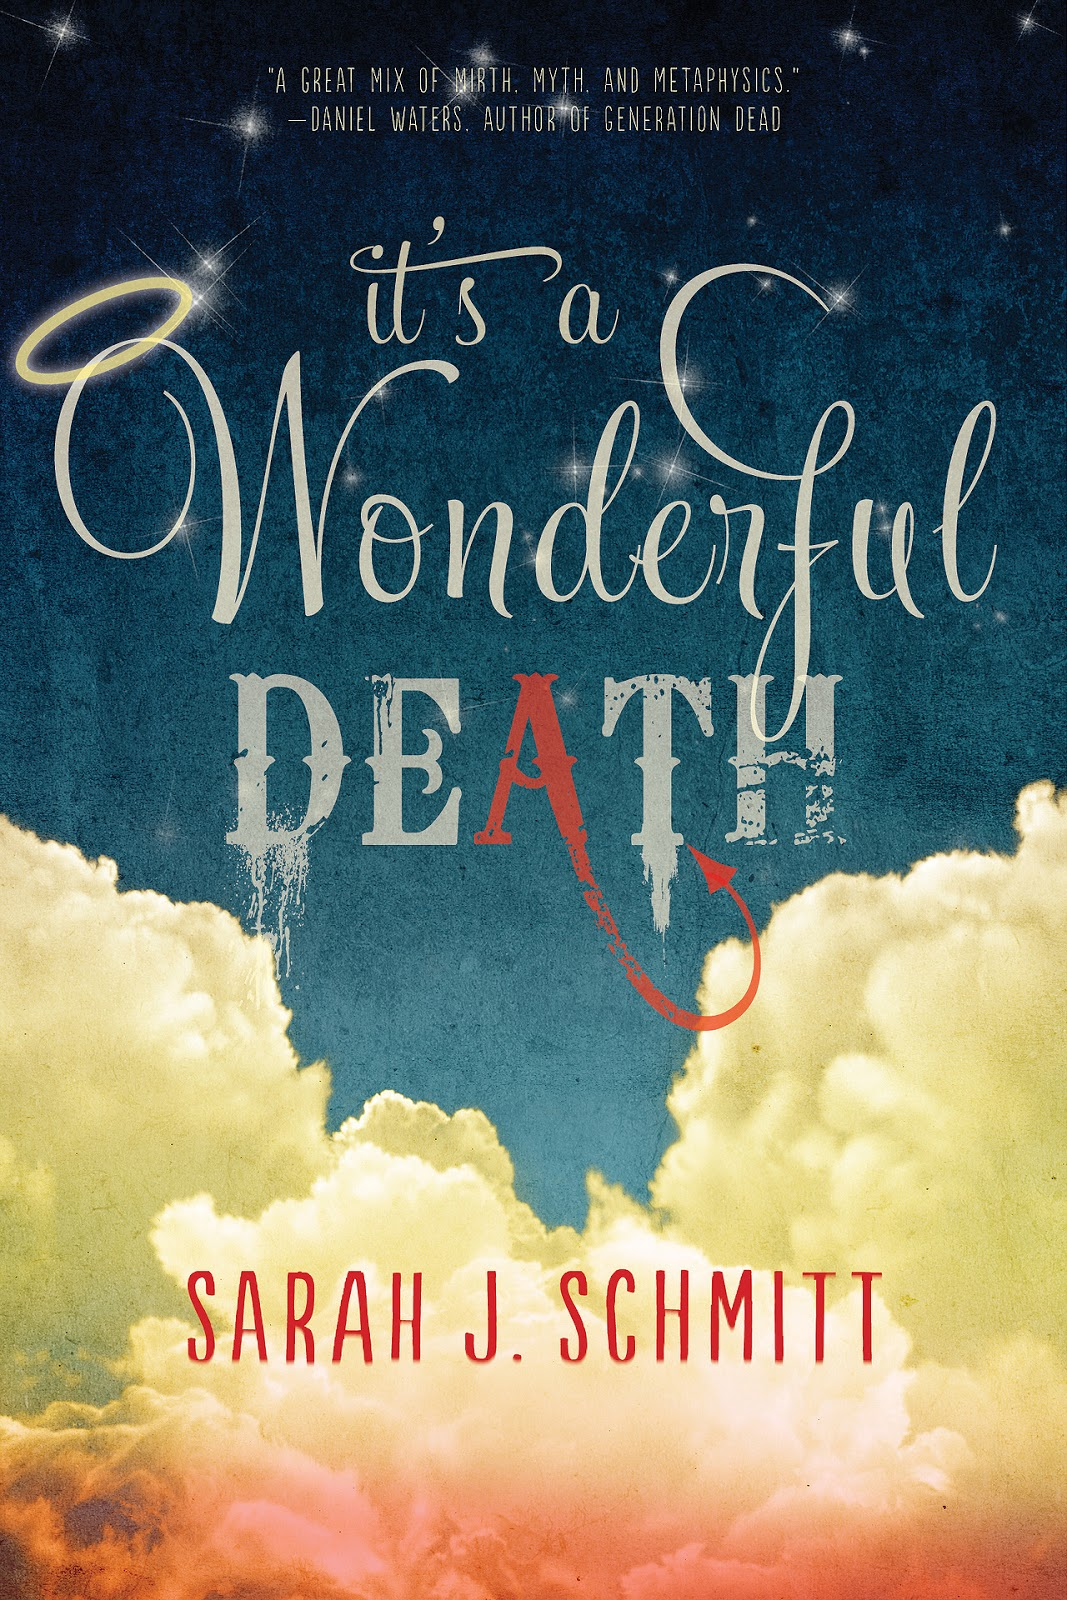 It's a Wonderful Death by Sarah J. Schmidtt